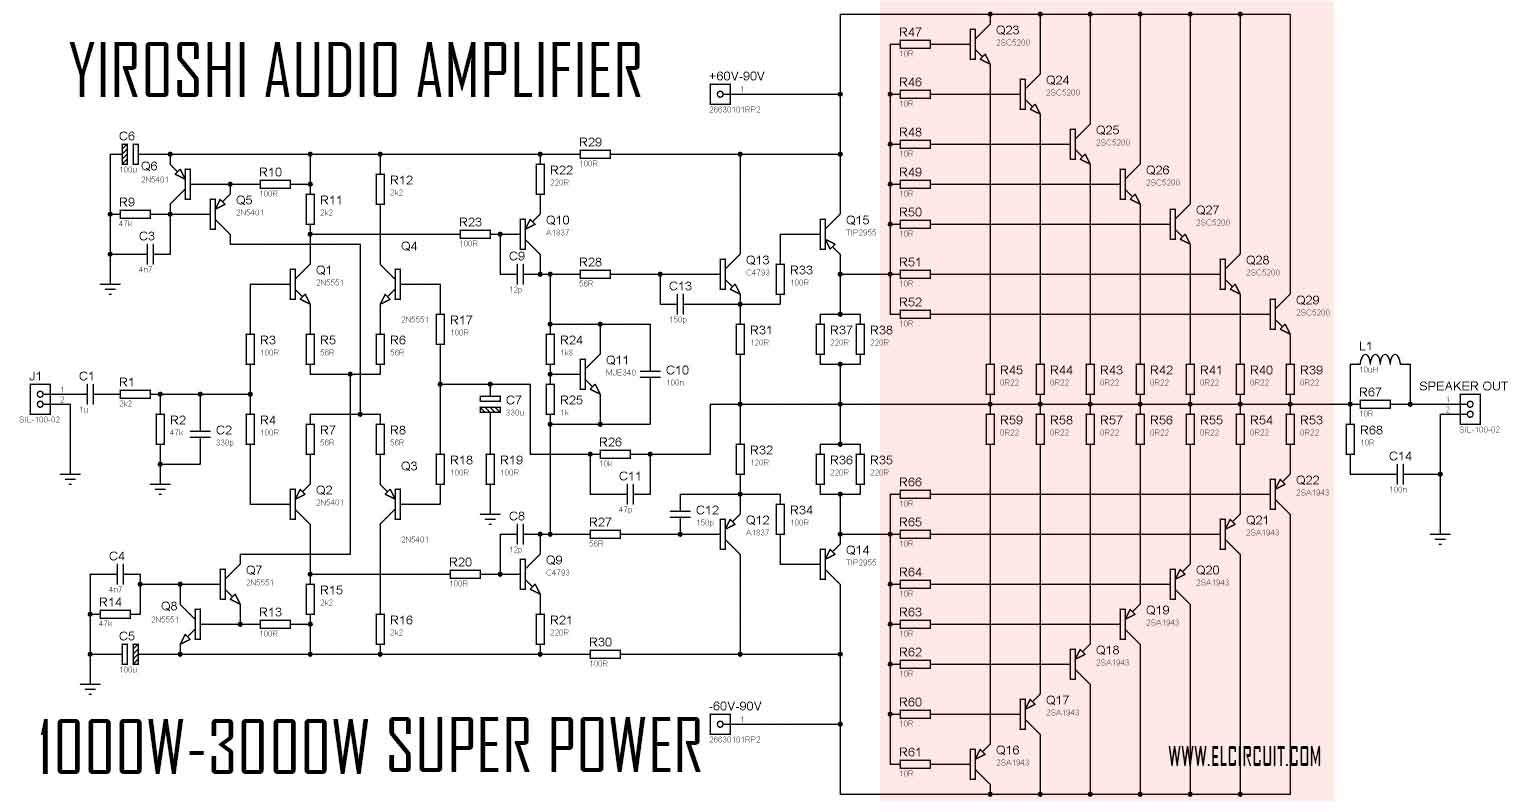 power amplifier 2000 watt schematic design ver wiring diagrampower amplifier 2000 watt schematic design power amplifier 2000 watt boss 2000 watt amp power amplifier 2000 watt schematic design